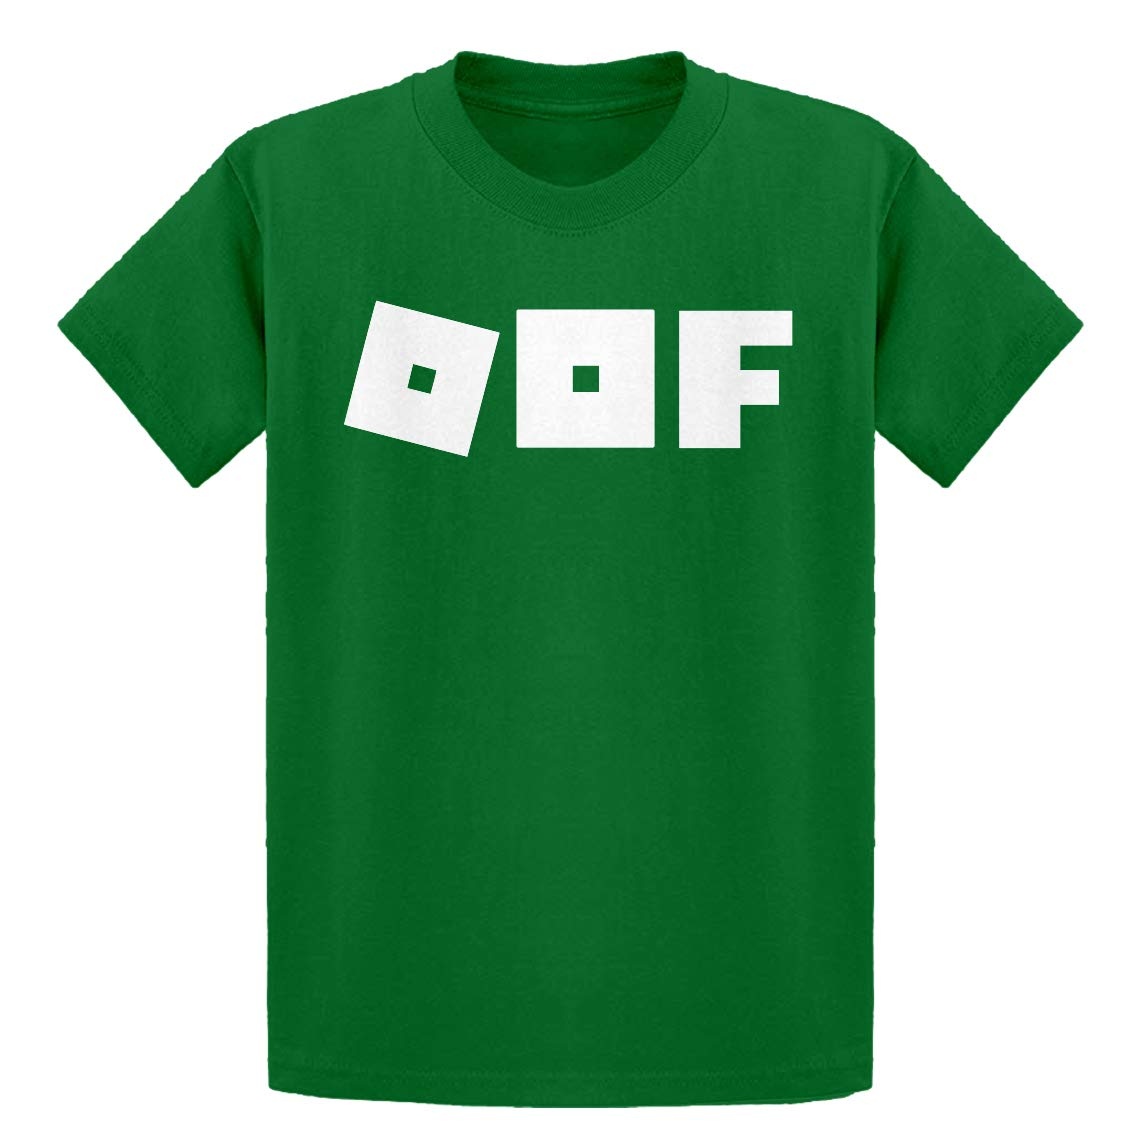 Indica Plateau Youth Oof Kids T-Shirt 3841-Y